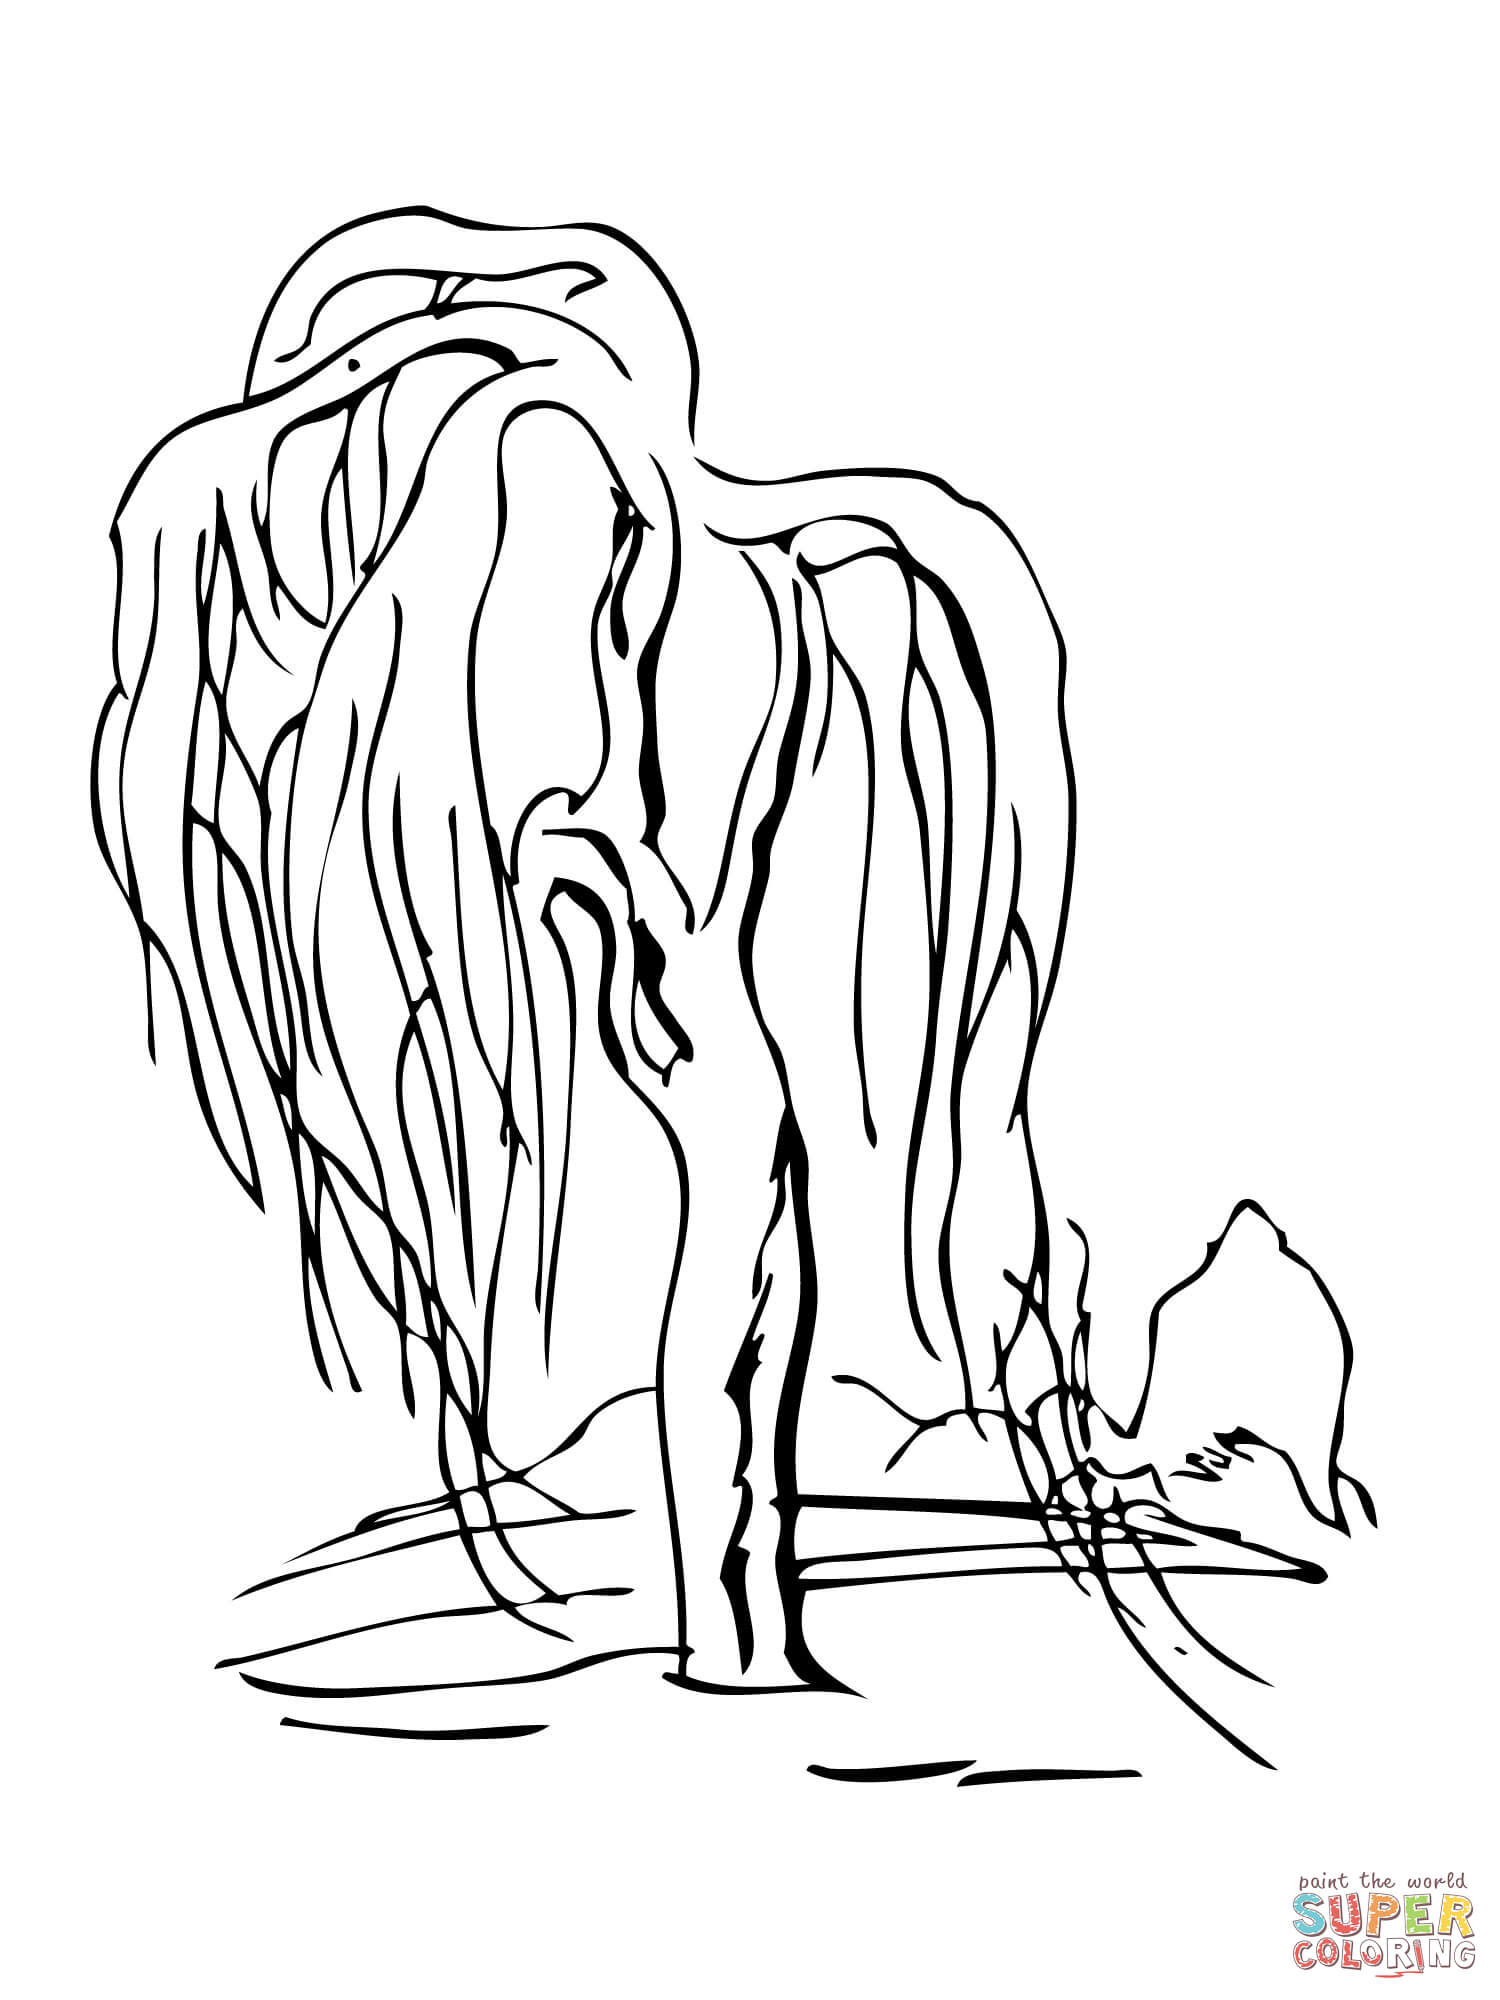 Weeping Willow coloring #10, Download drawings